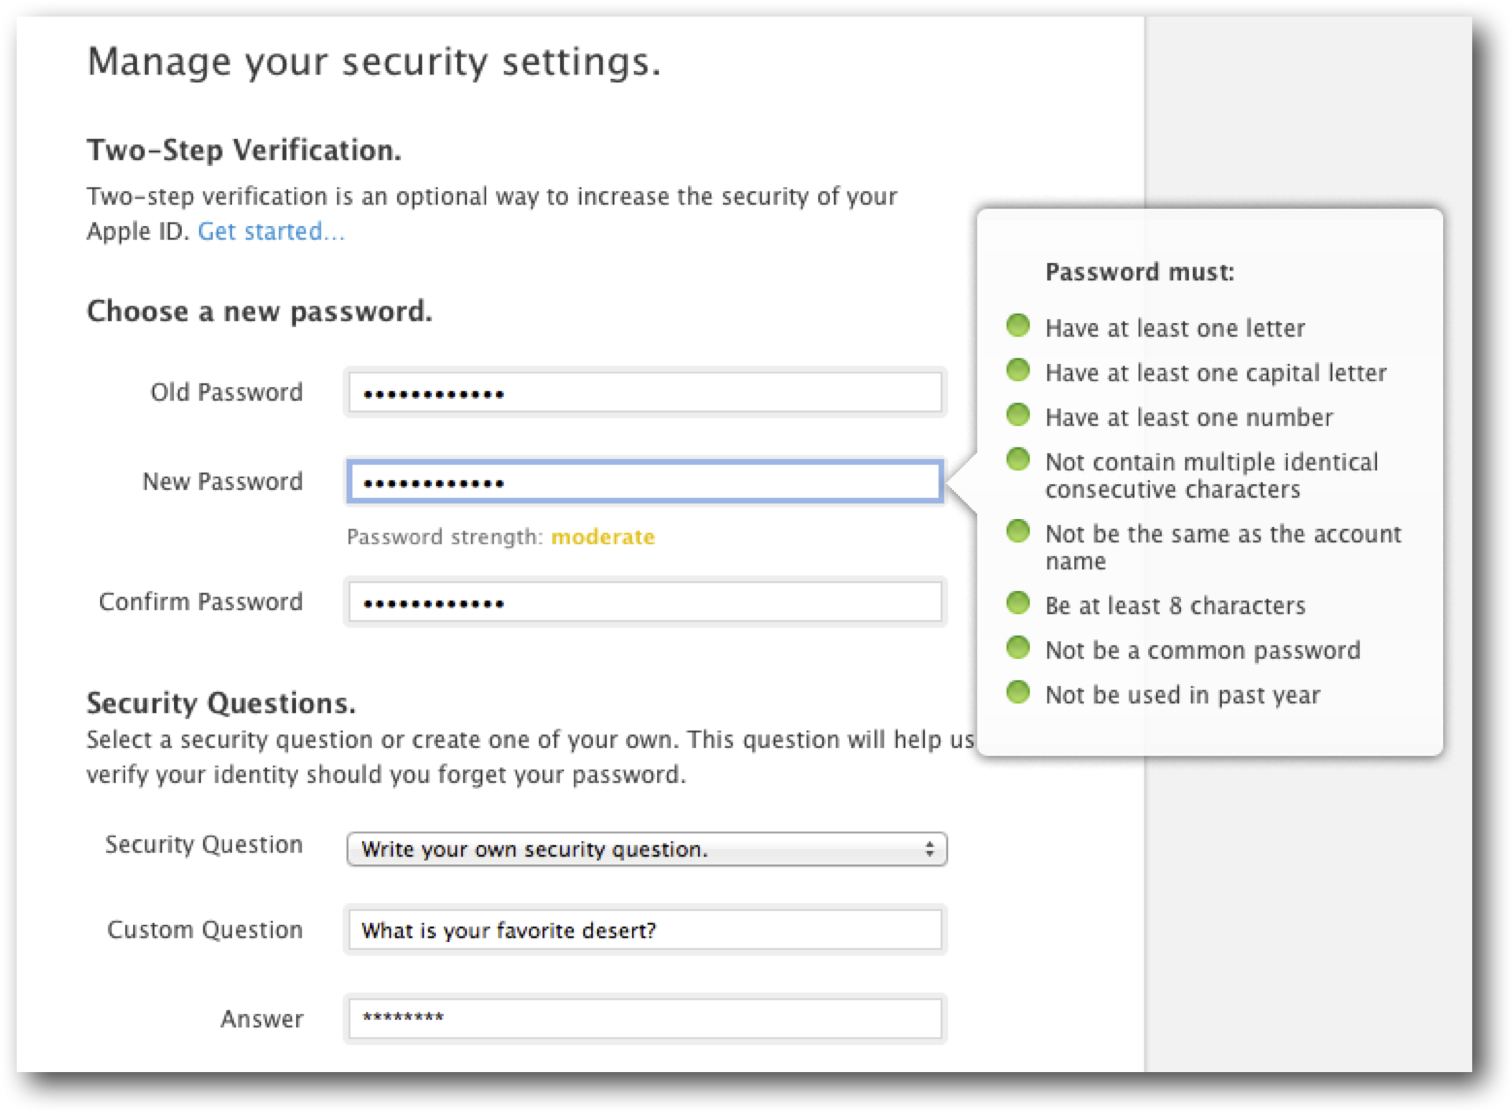 Update your password and security questions